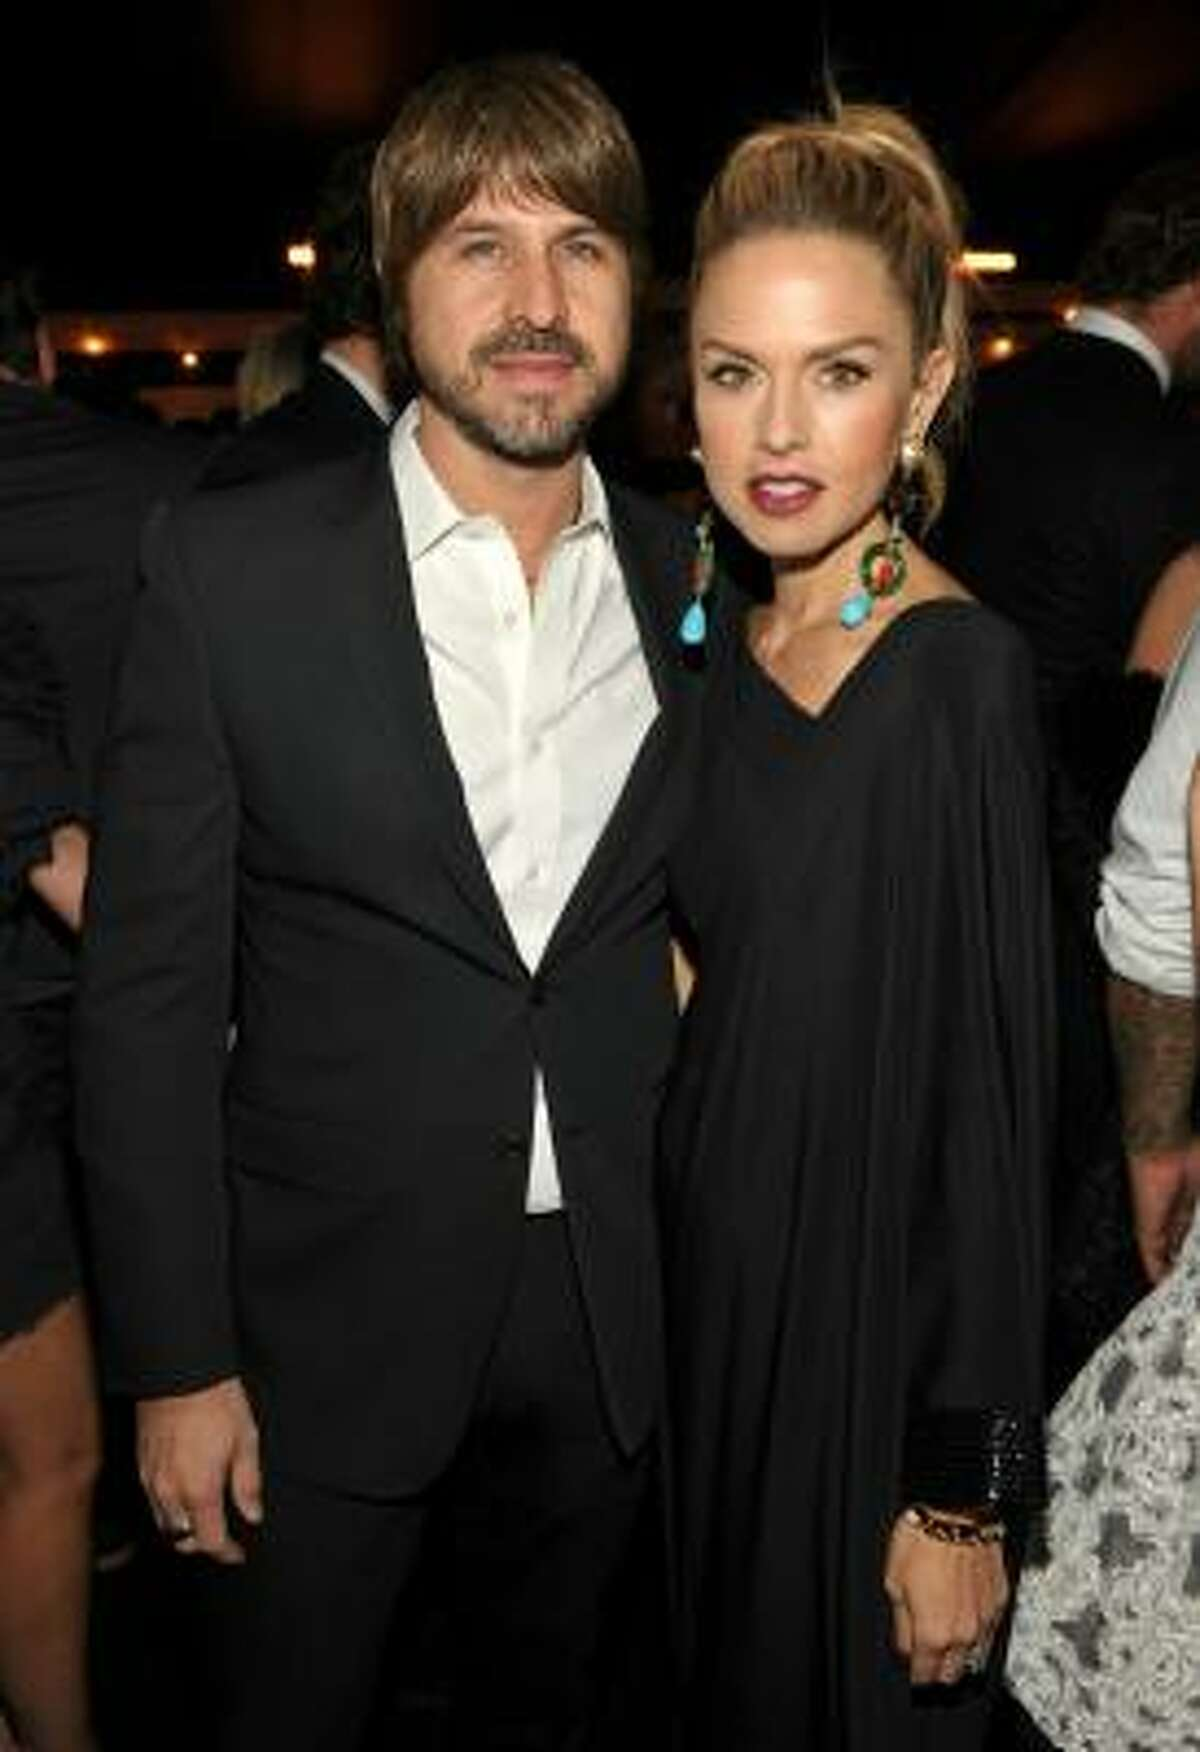 Rodger Berman and stylist Rachel Zoe dodged pregnancy questions for months before announcing on twitter they're expecting. They're having a boy.